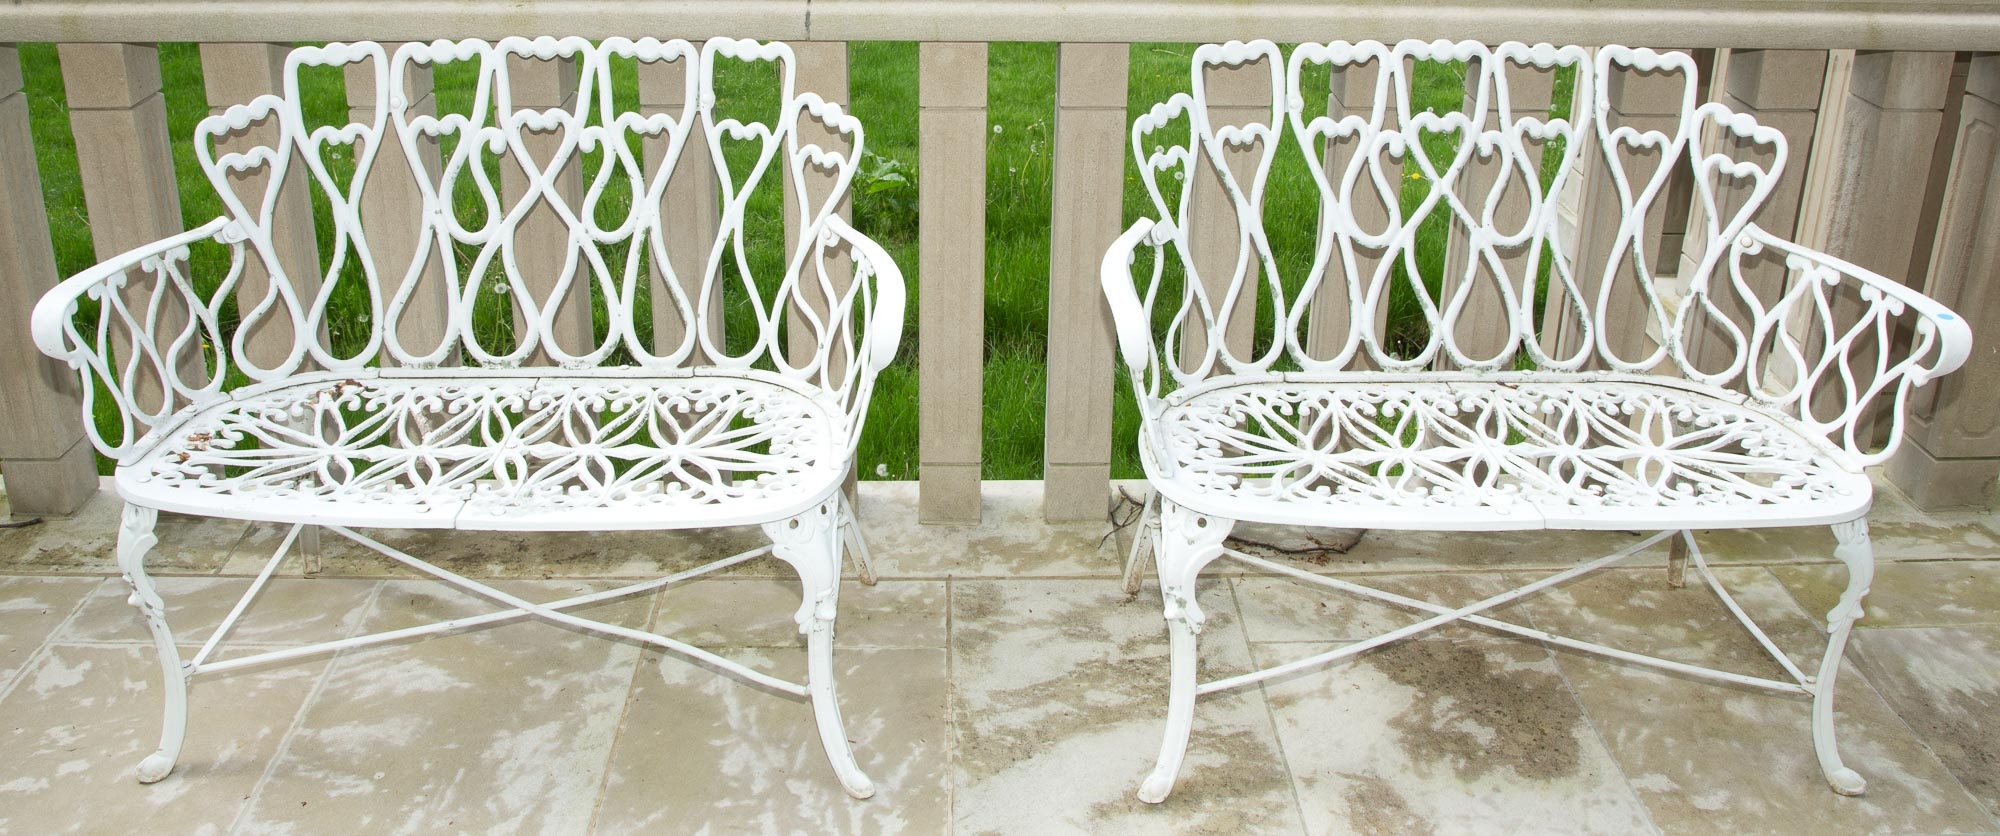 Lot image - Pair of White Painted Cast Metal Garden Benches